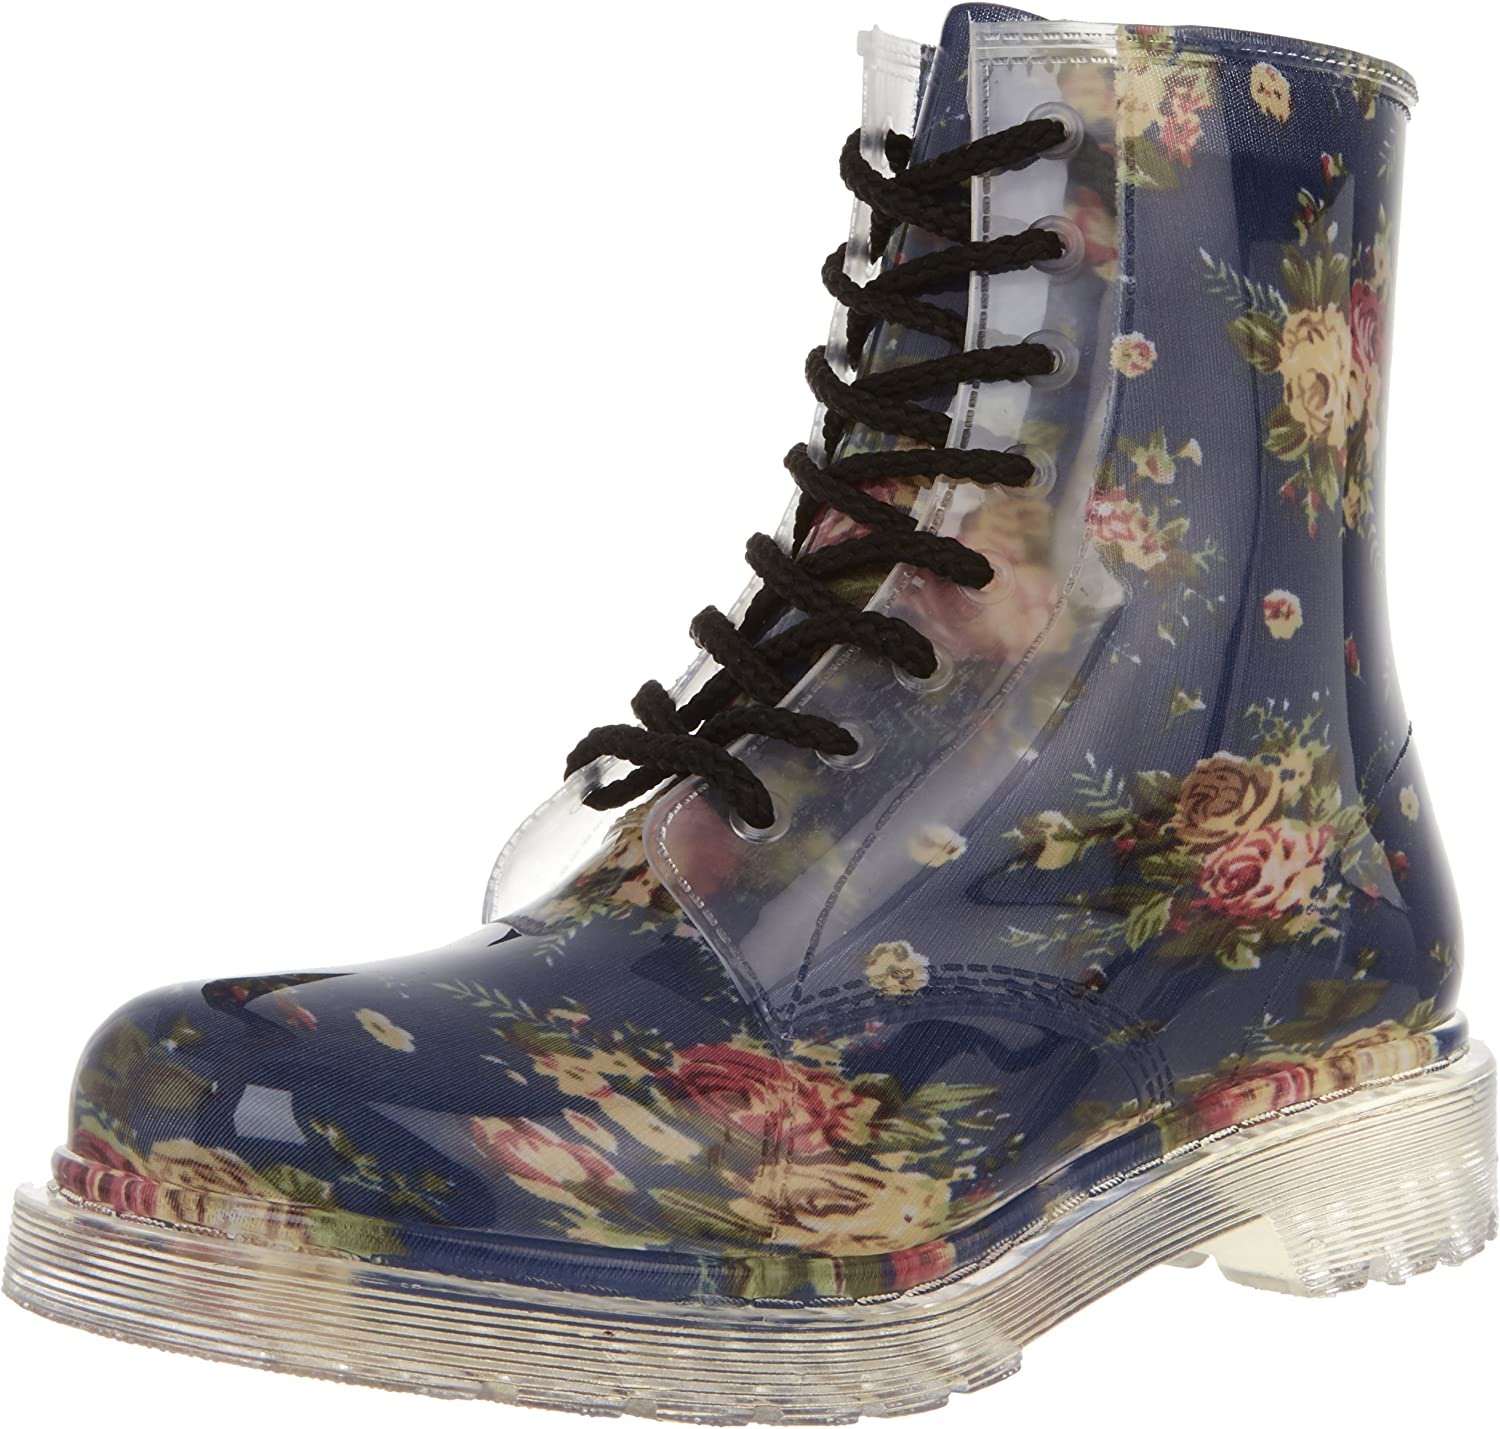 Dirty Laundry by Chinese Laundry Women's Rendition Boot